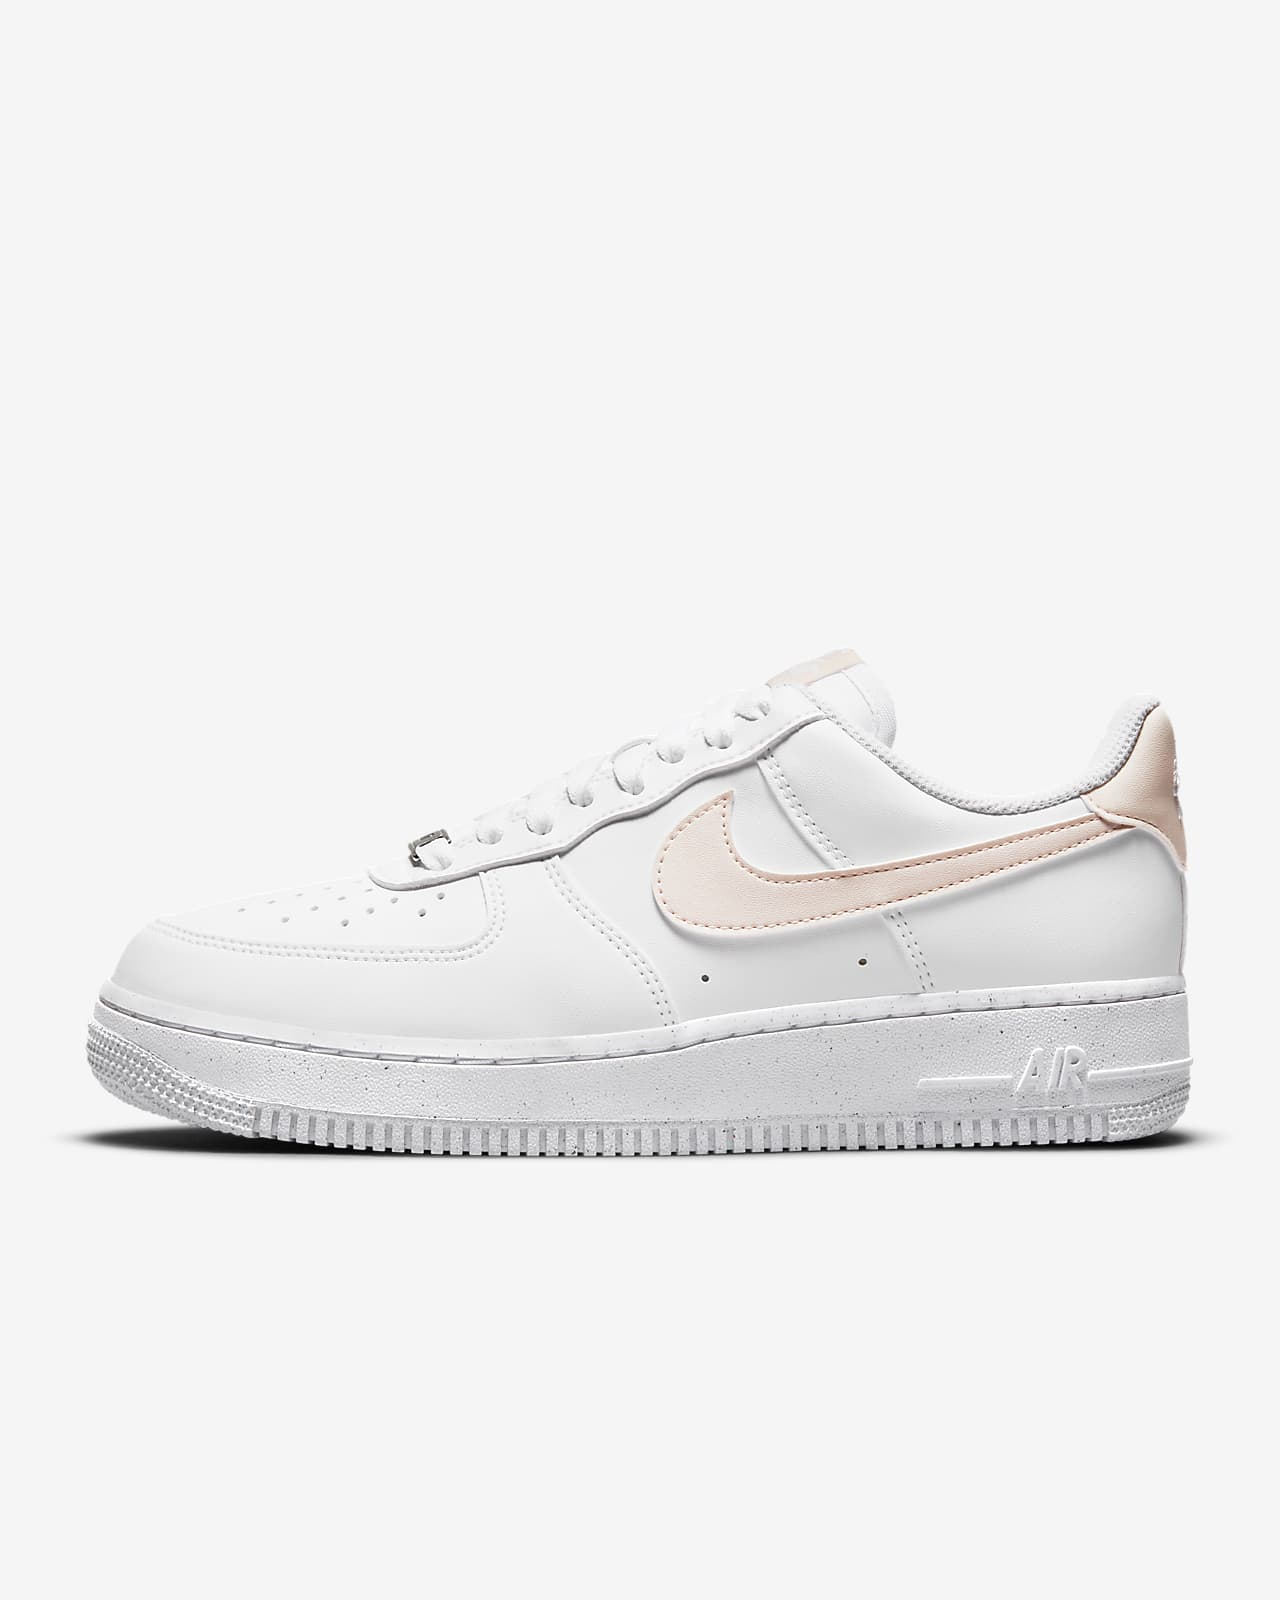 Chaussure Nike Air Force 1 '07 Next Nature pour Femme. Nike CA